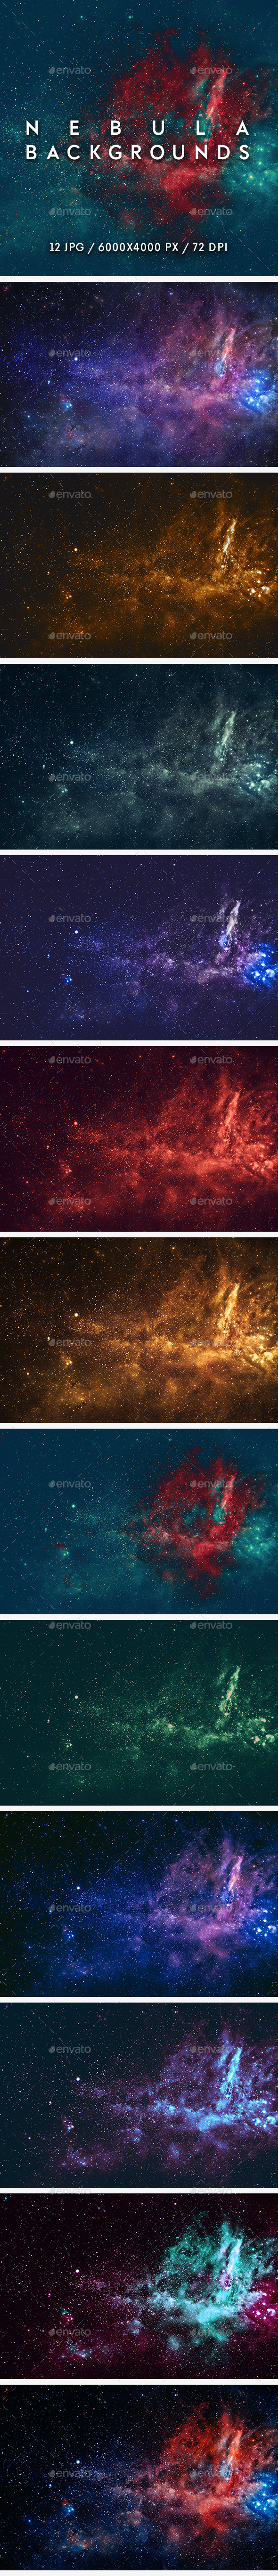 Nebula Backgrounds - Abstract Backgrounds